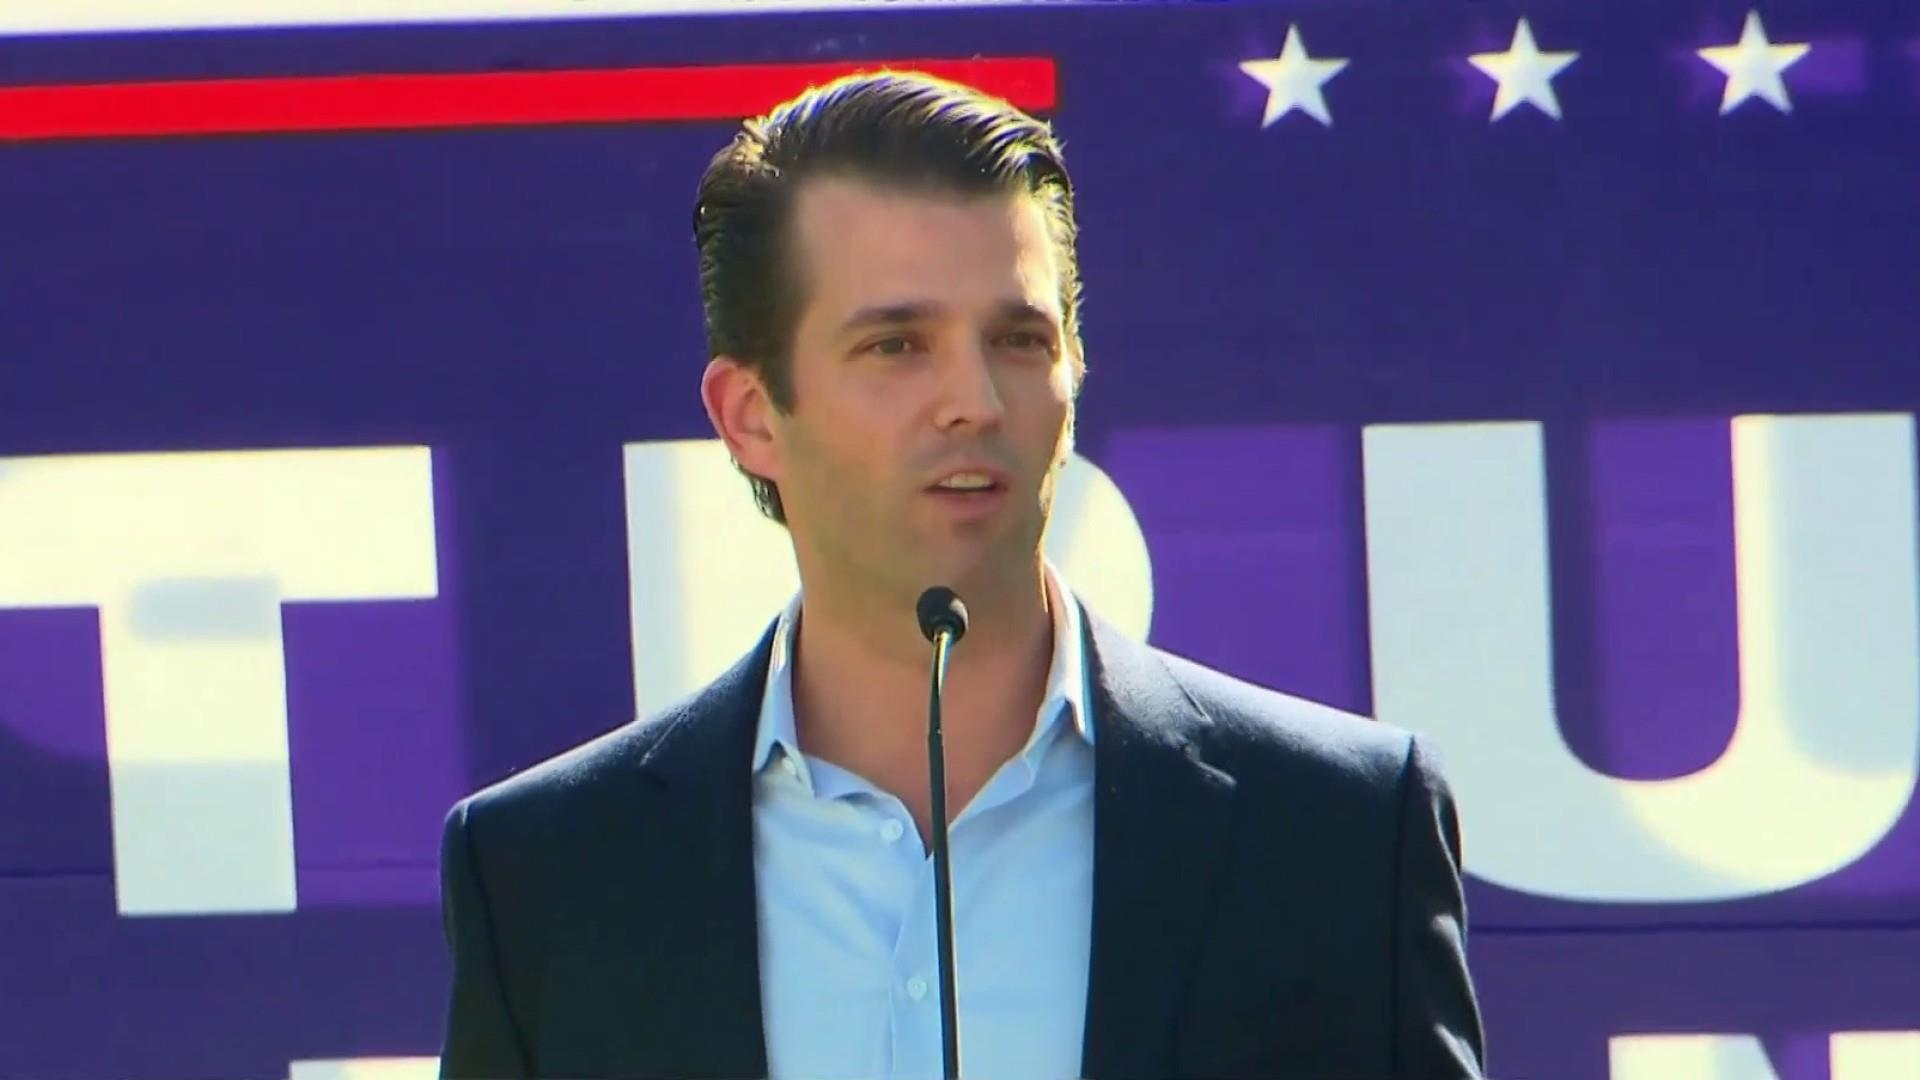 Senate Intel bends to conditions for Trump Junior testimony